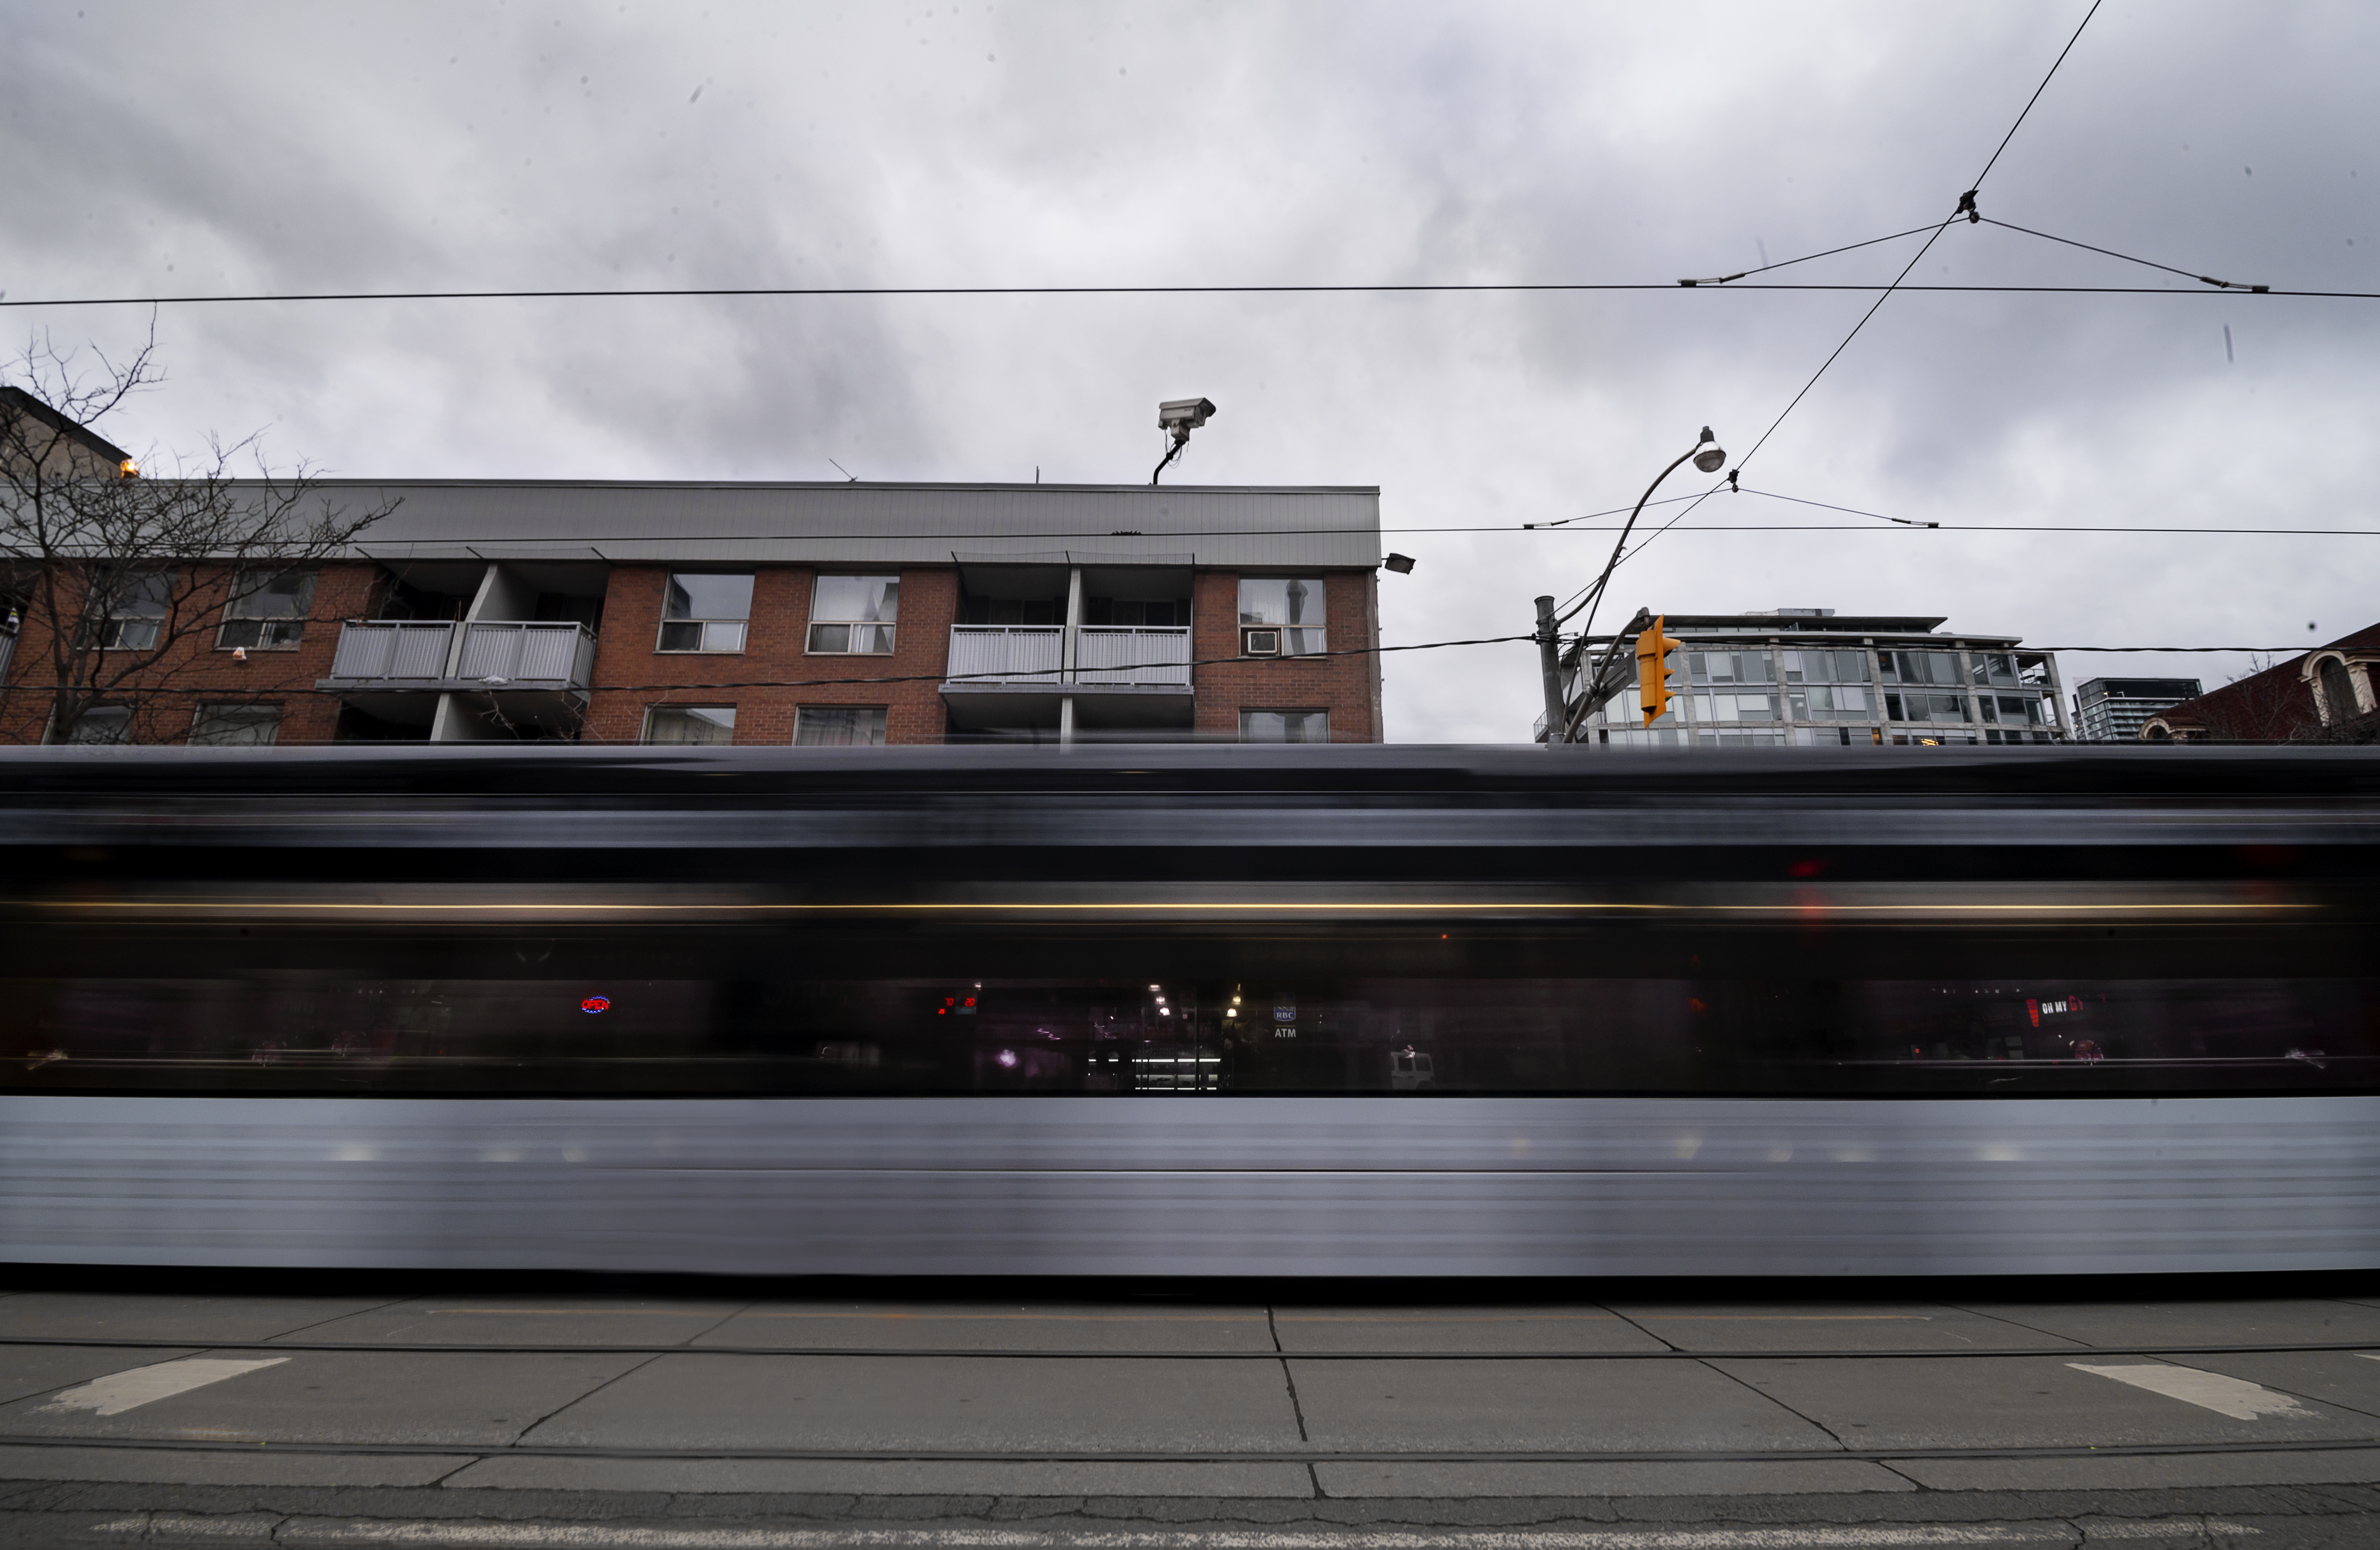 TTC Suspended in time